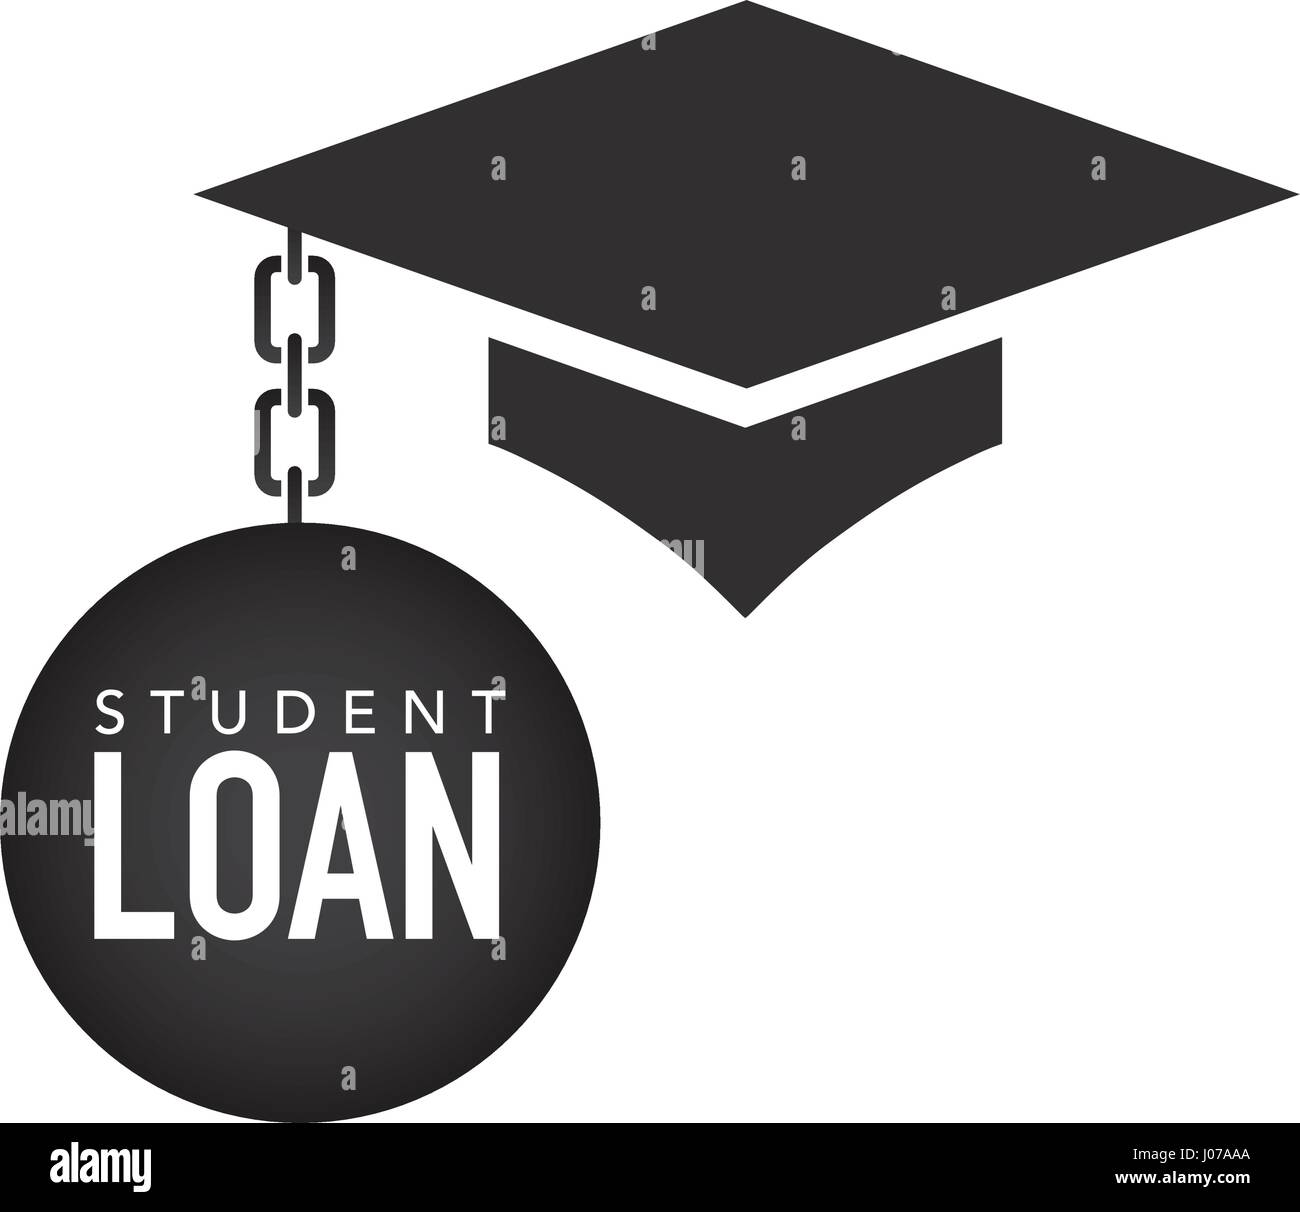 Graduate Student Loan Icon  Student Loan Graphics For. Custom Graduation Stoles Cheap. School Counseling Graduate Programs Online. Timeshare Cancellation Letter Template. Event Website Template Free. 1st Birthday Images. Book Cover Design Software. Best Sample Invoice Email Template. Excellent Simple Student Resume Format